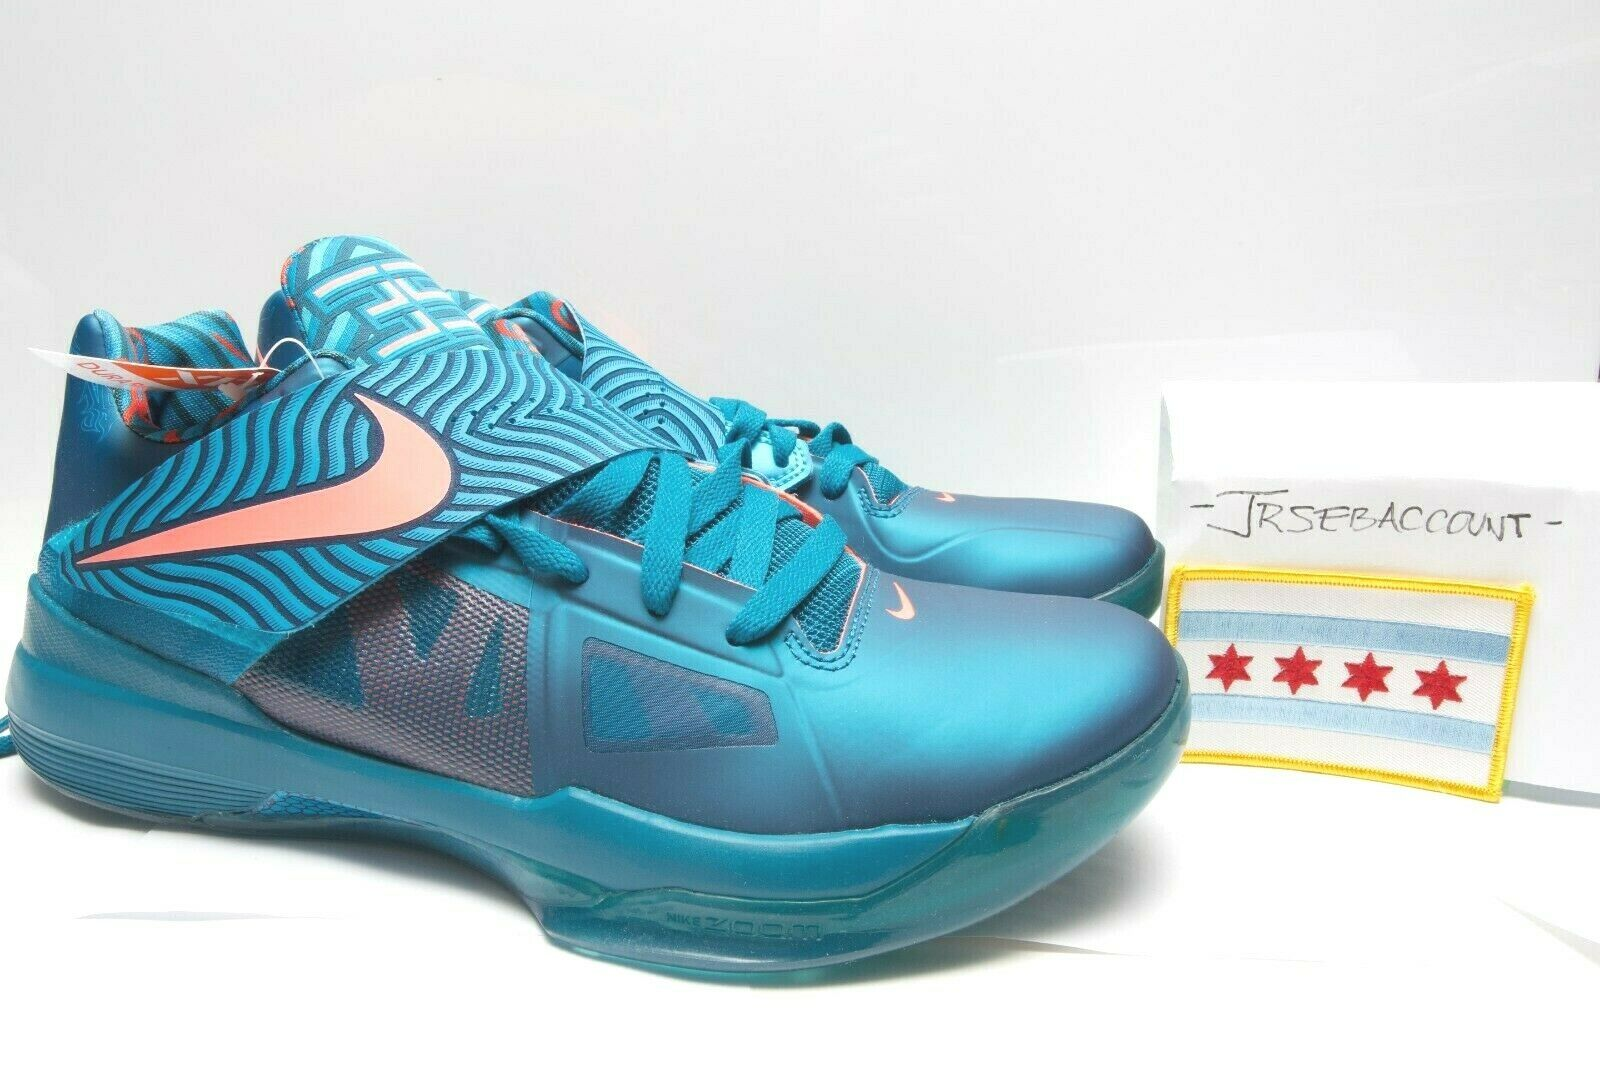 Nike Zoom KD IV 4 - YOTD Year of the Dragon - Size 11 - 473679-300